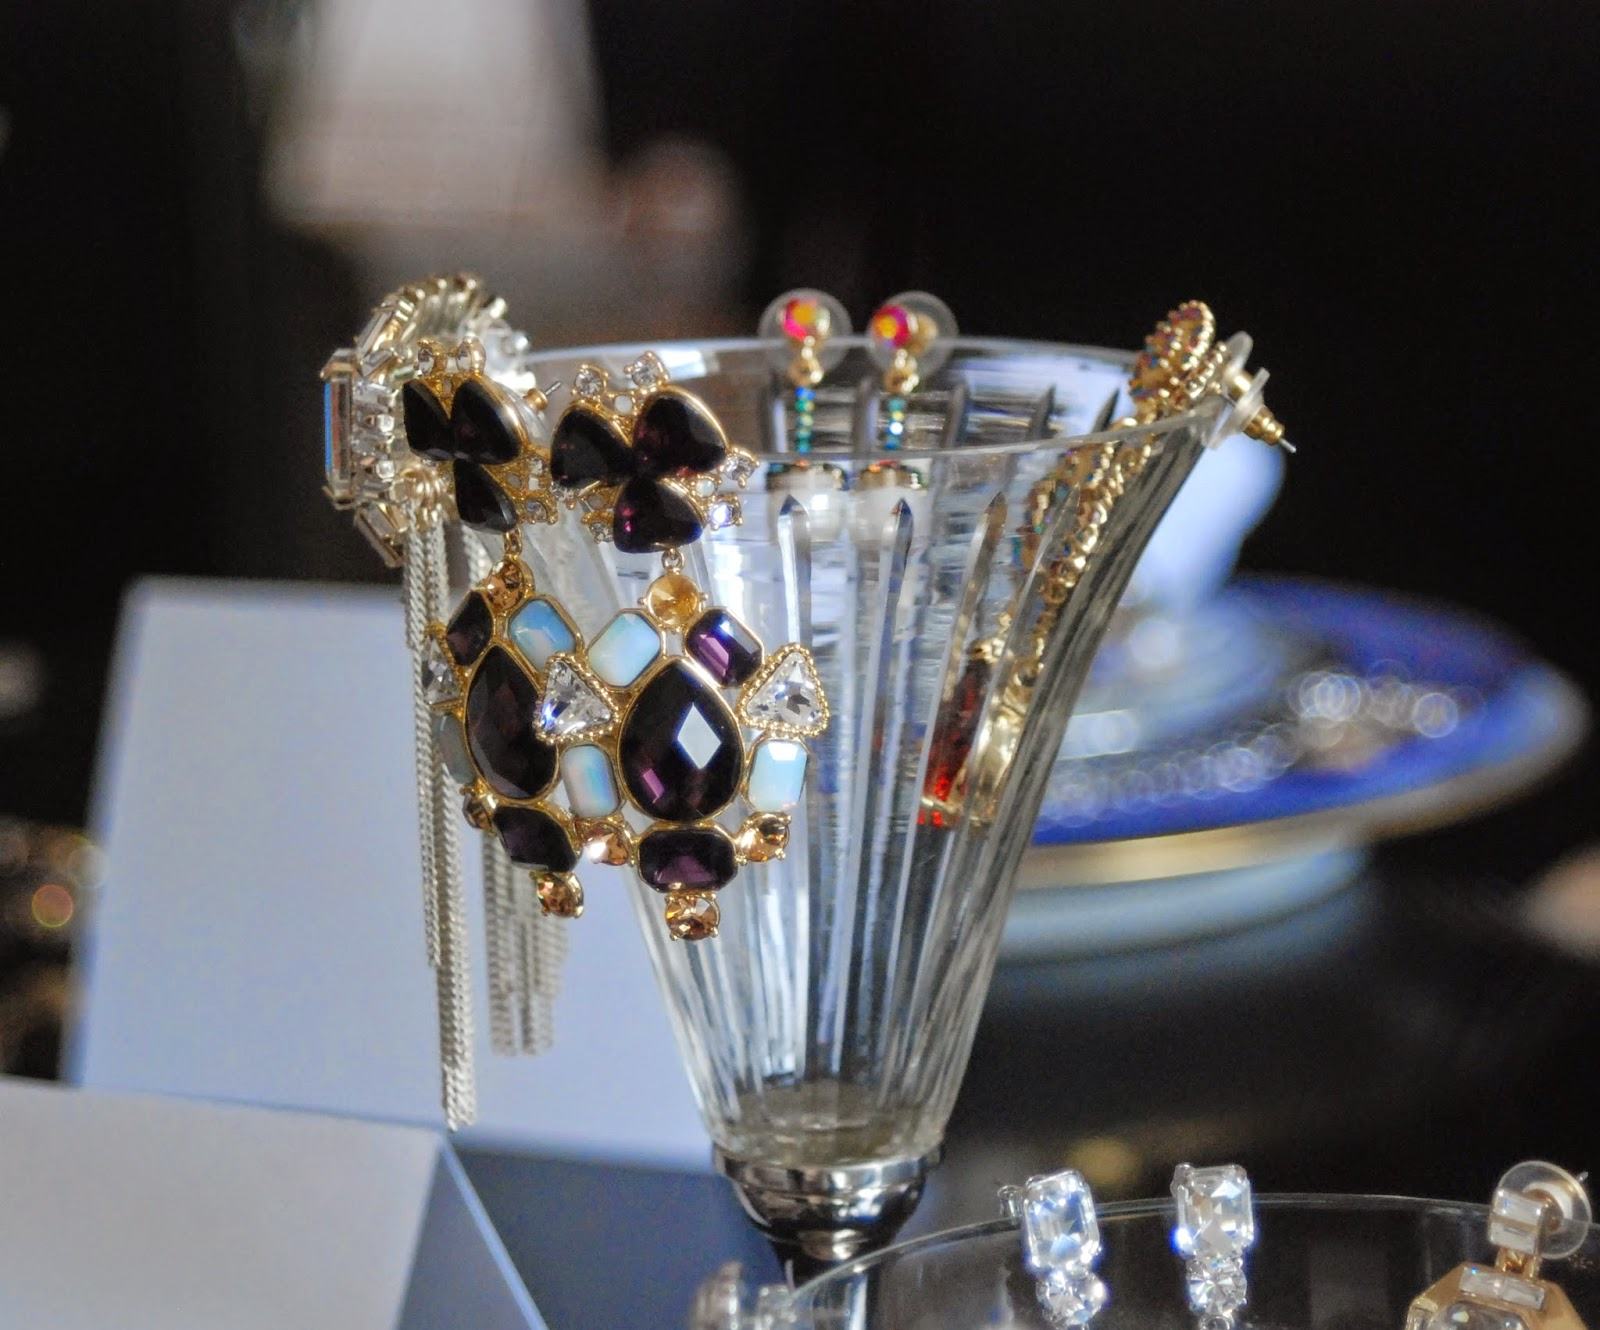 jewellery on glass from QVC event/madmumof7